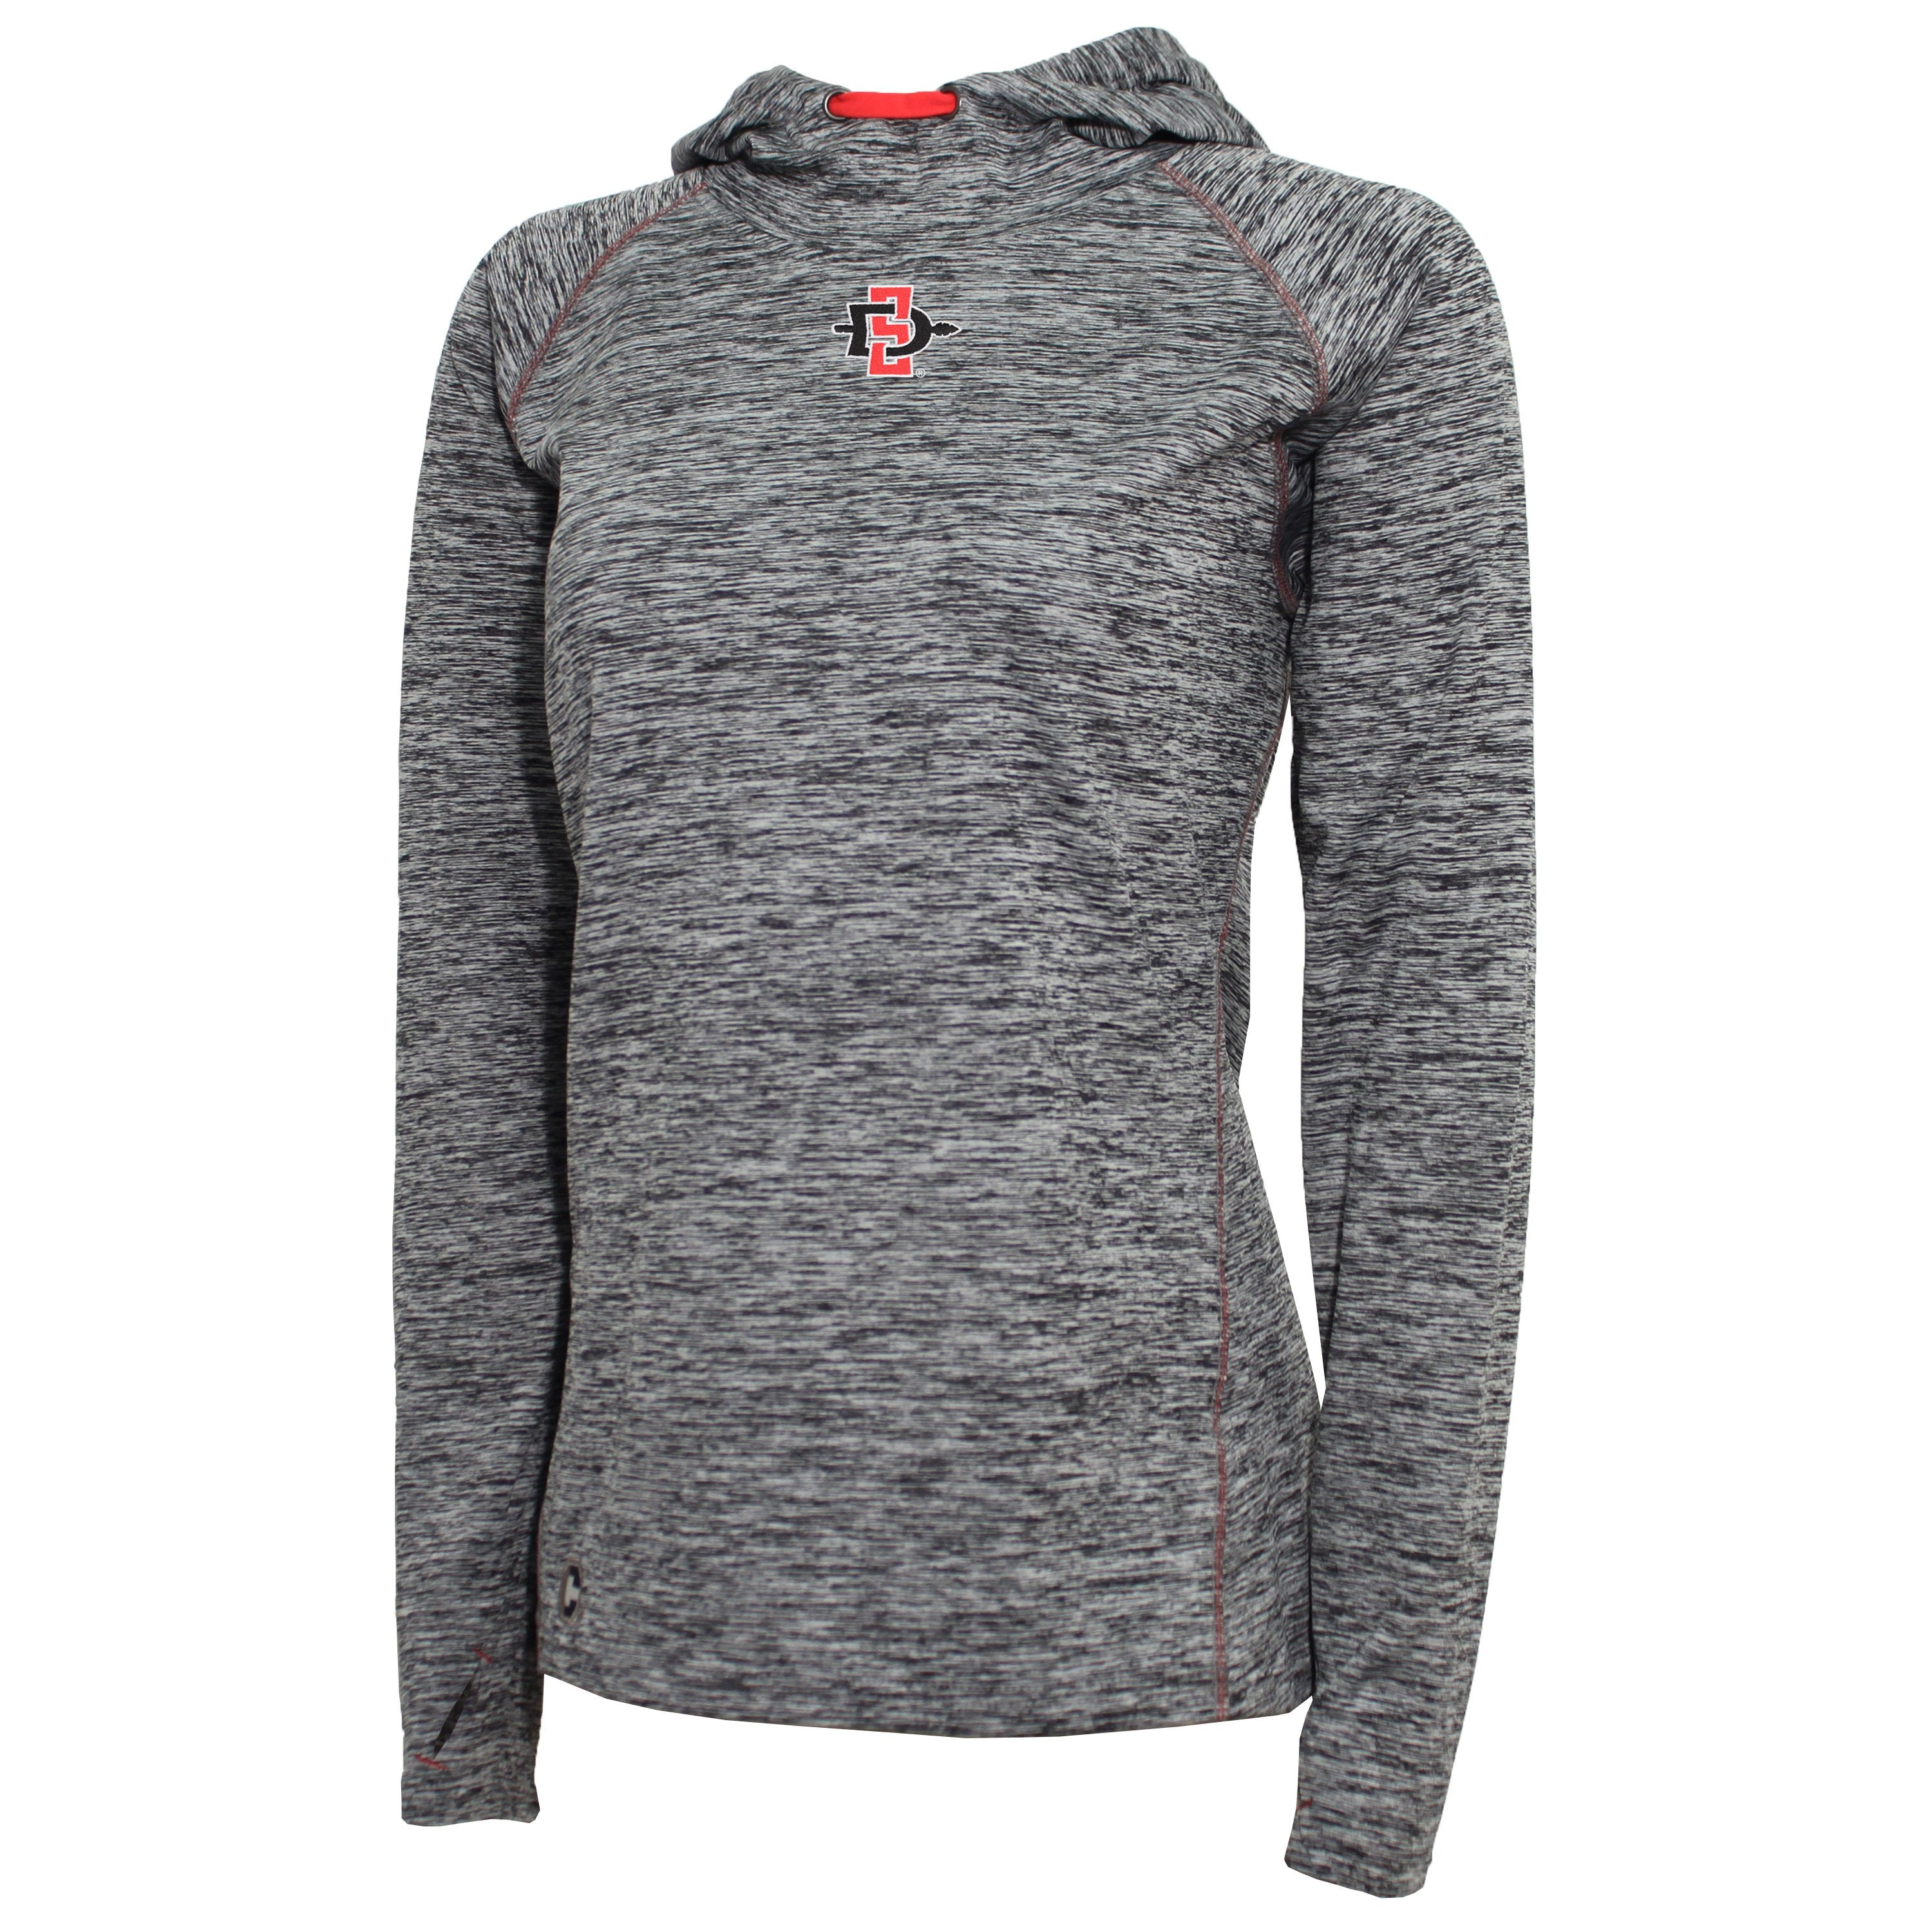 59de8864 Crable San Diego State Women's Black Pullover Hoodie – Club Level Brands